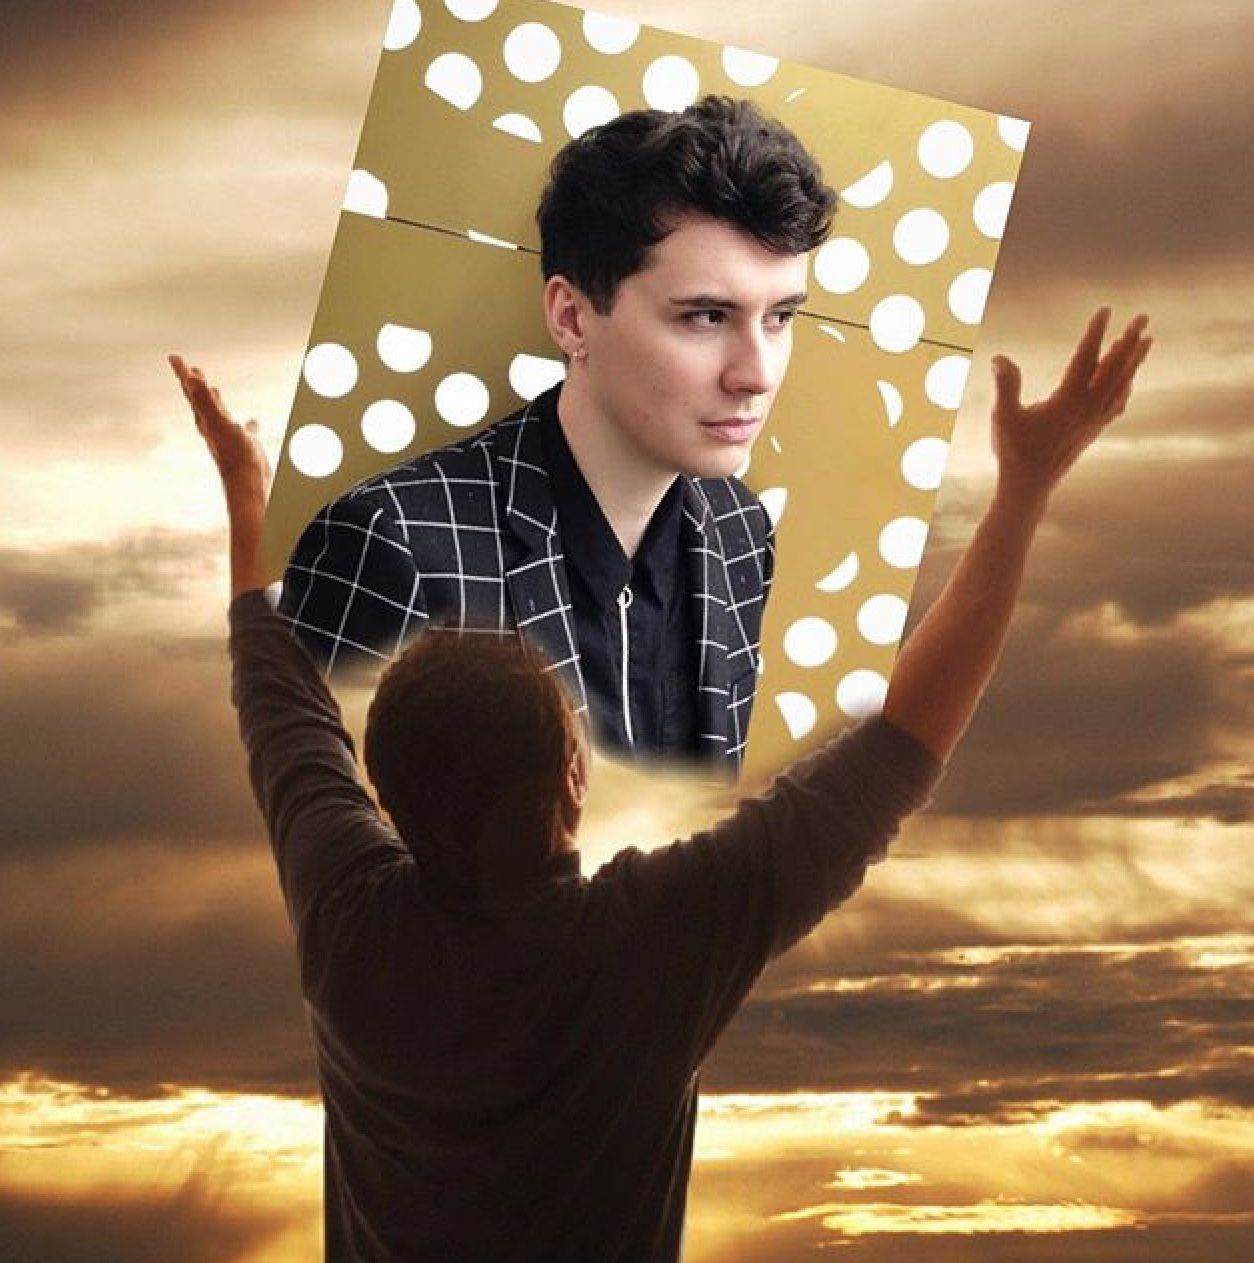 Pin by Paige on Youtubers Dan, phil, Thicc meme, Most